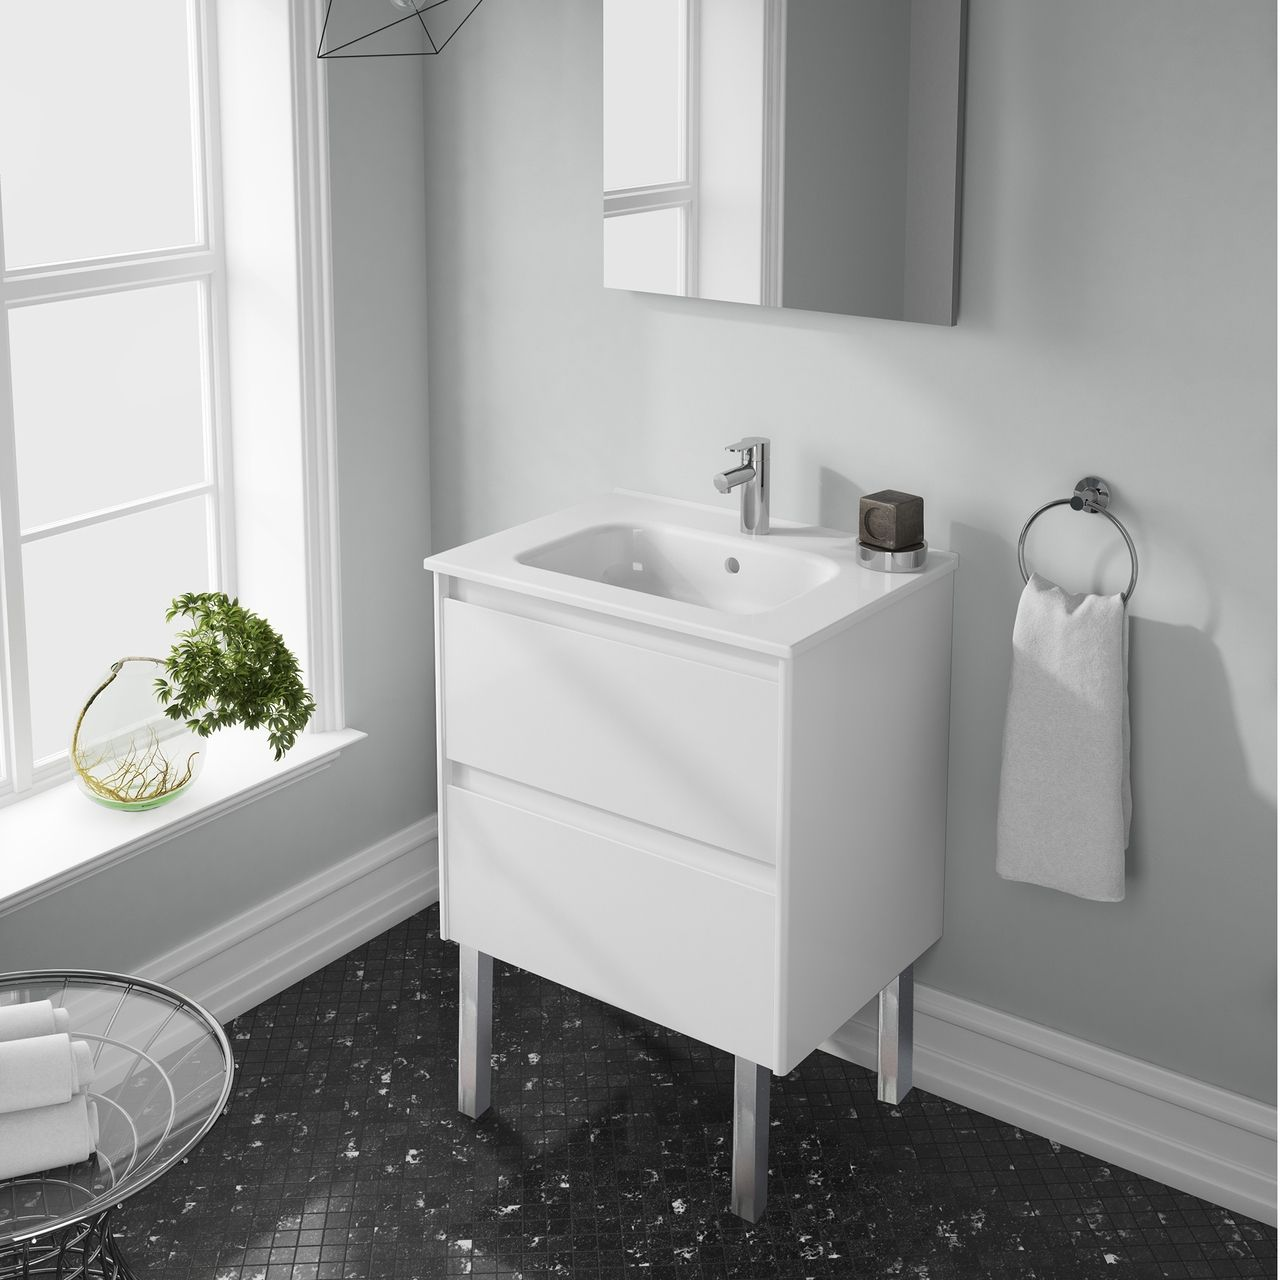 Stylistic Storage Solutions - Bathroom Vanity